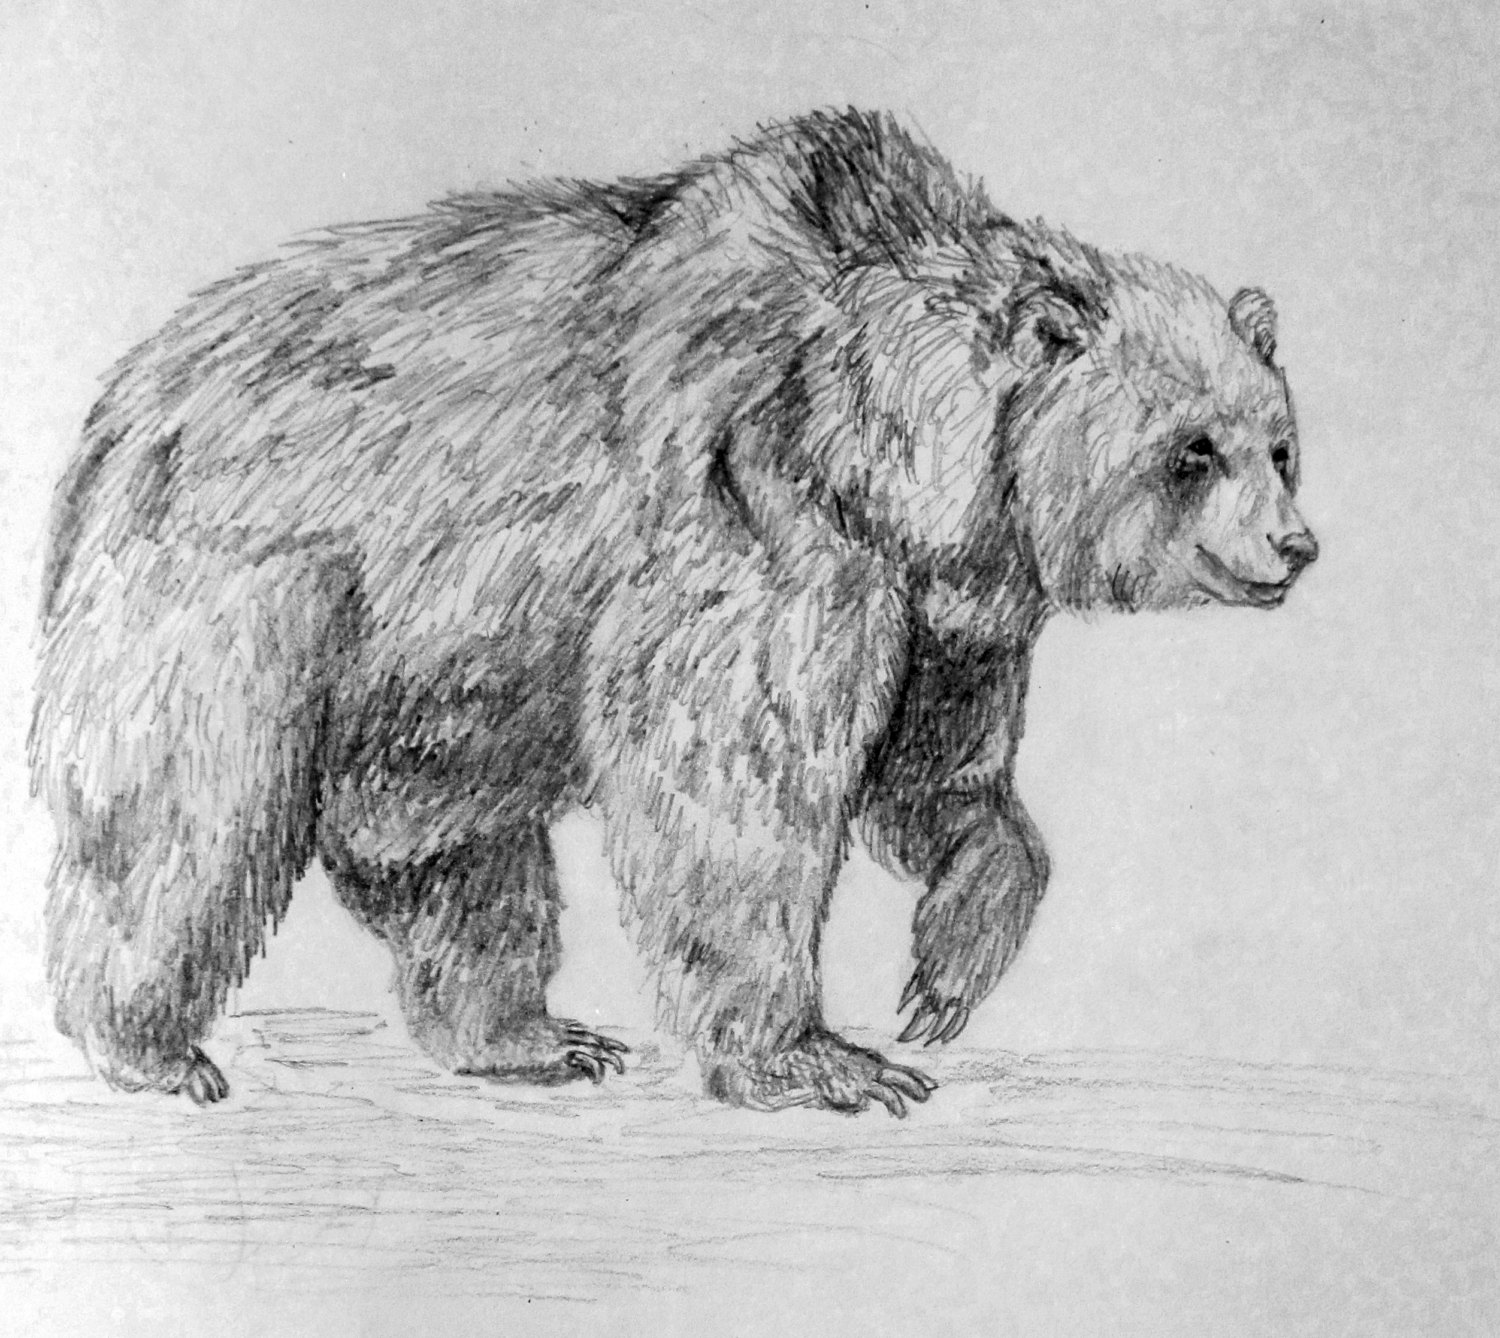 grizzly bear drawings 10 bear drawings showcase hative bear grizzly drawings